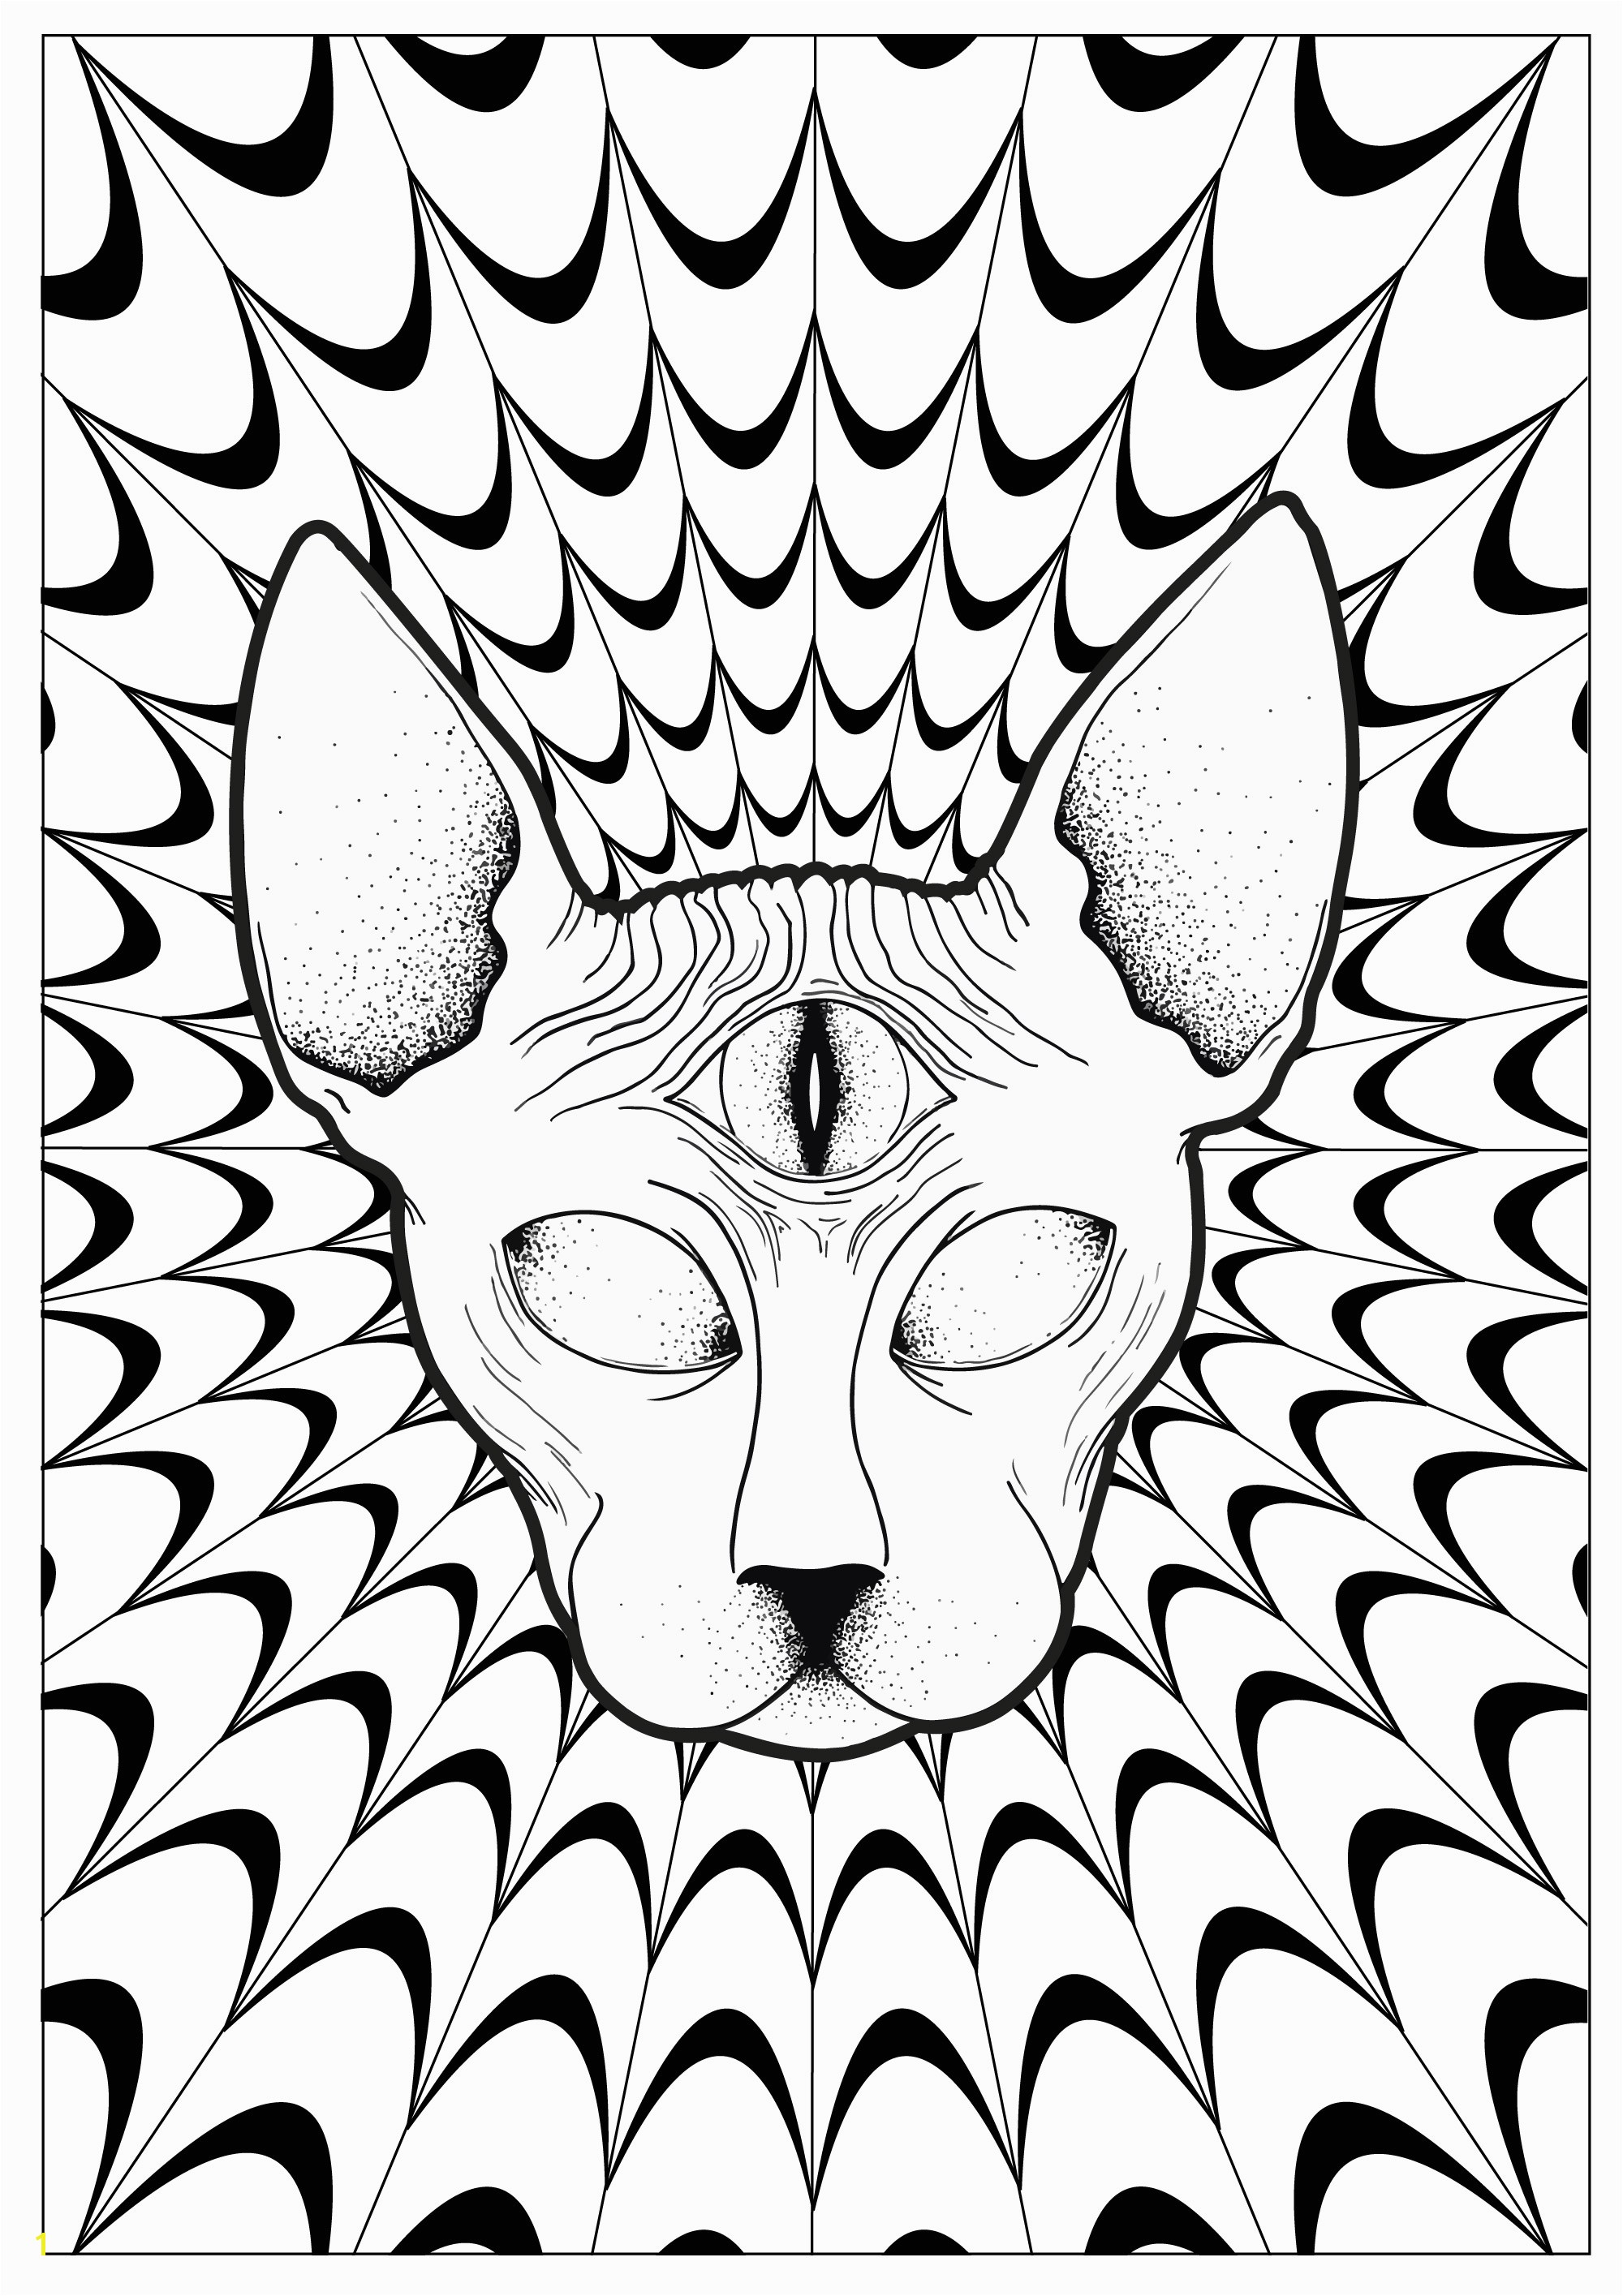 Psychedelic Coloring Pages For Adults Justcolor colors in